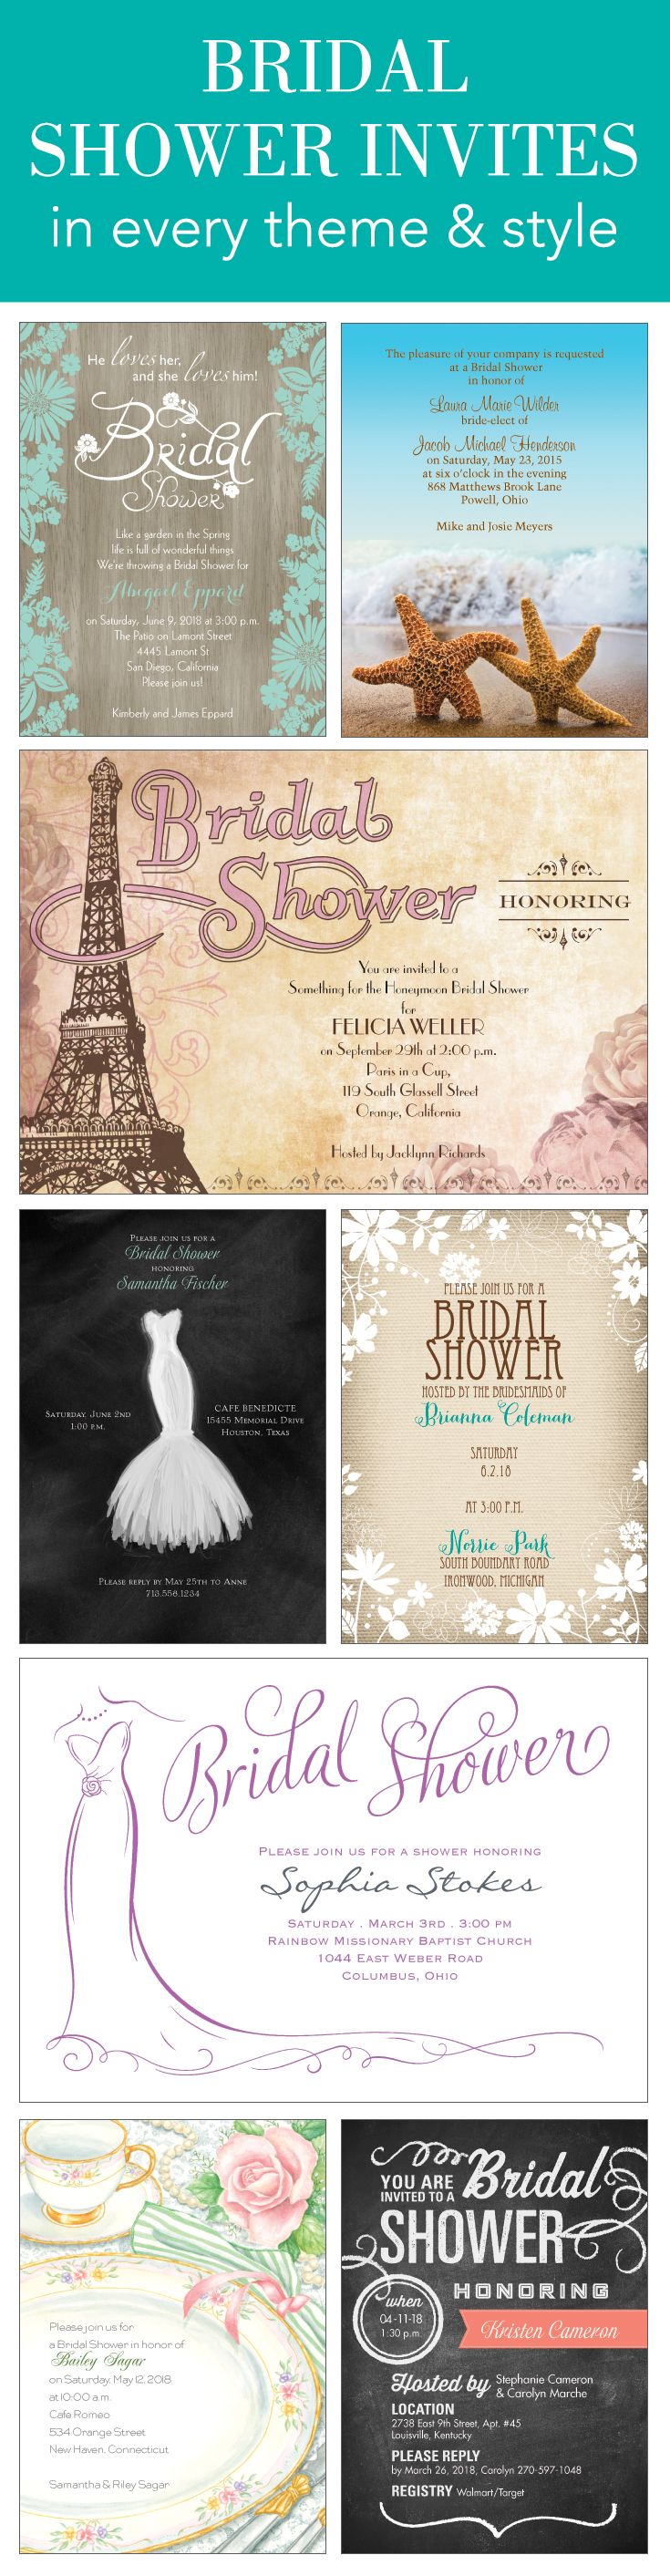 Planning a bridal shower Set your theme